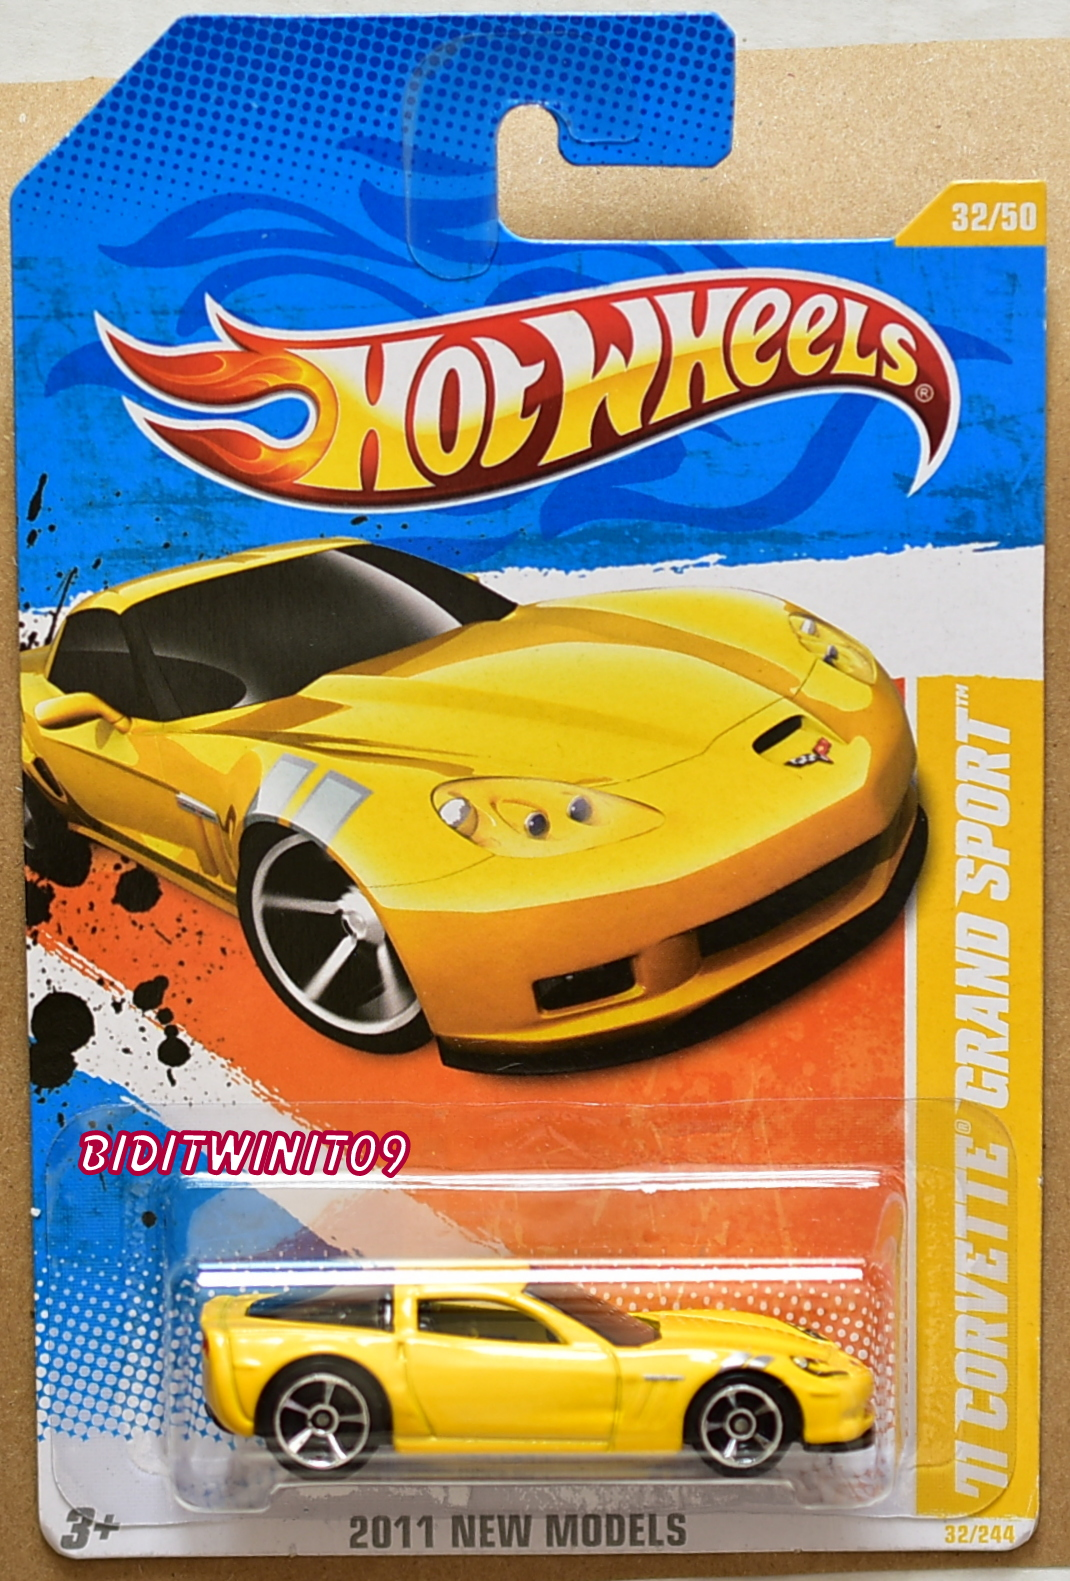 HOT WHEELS 2011 NEW MODELS '11 CORVETTE GRAND SPORT YELLOW